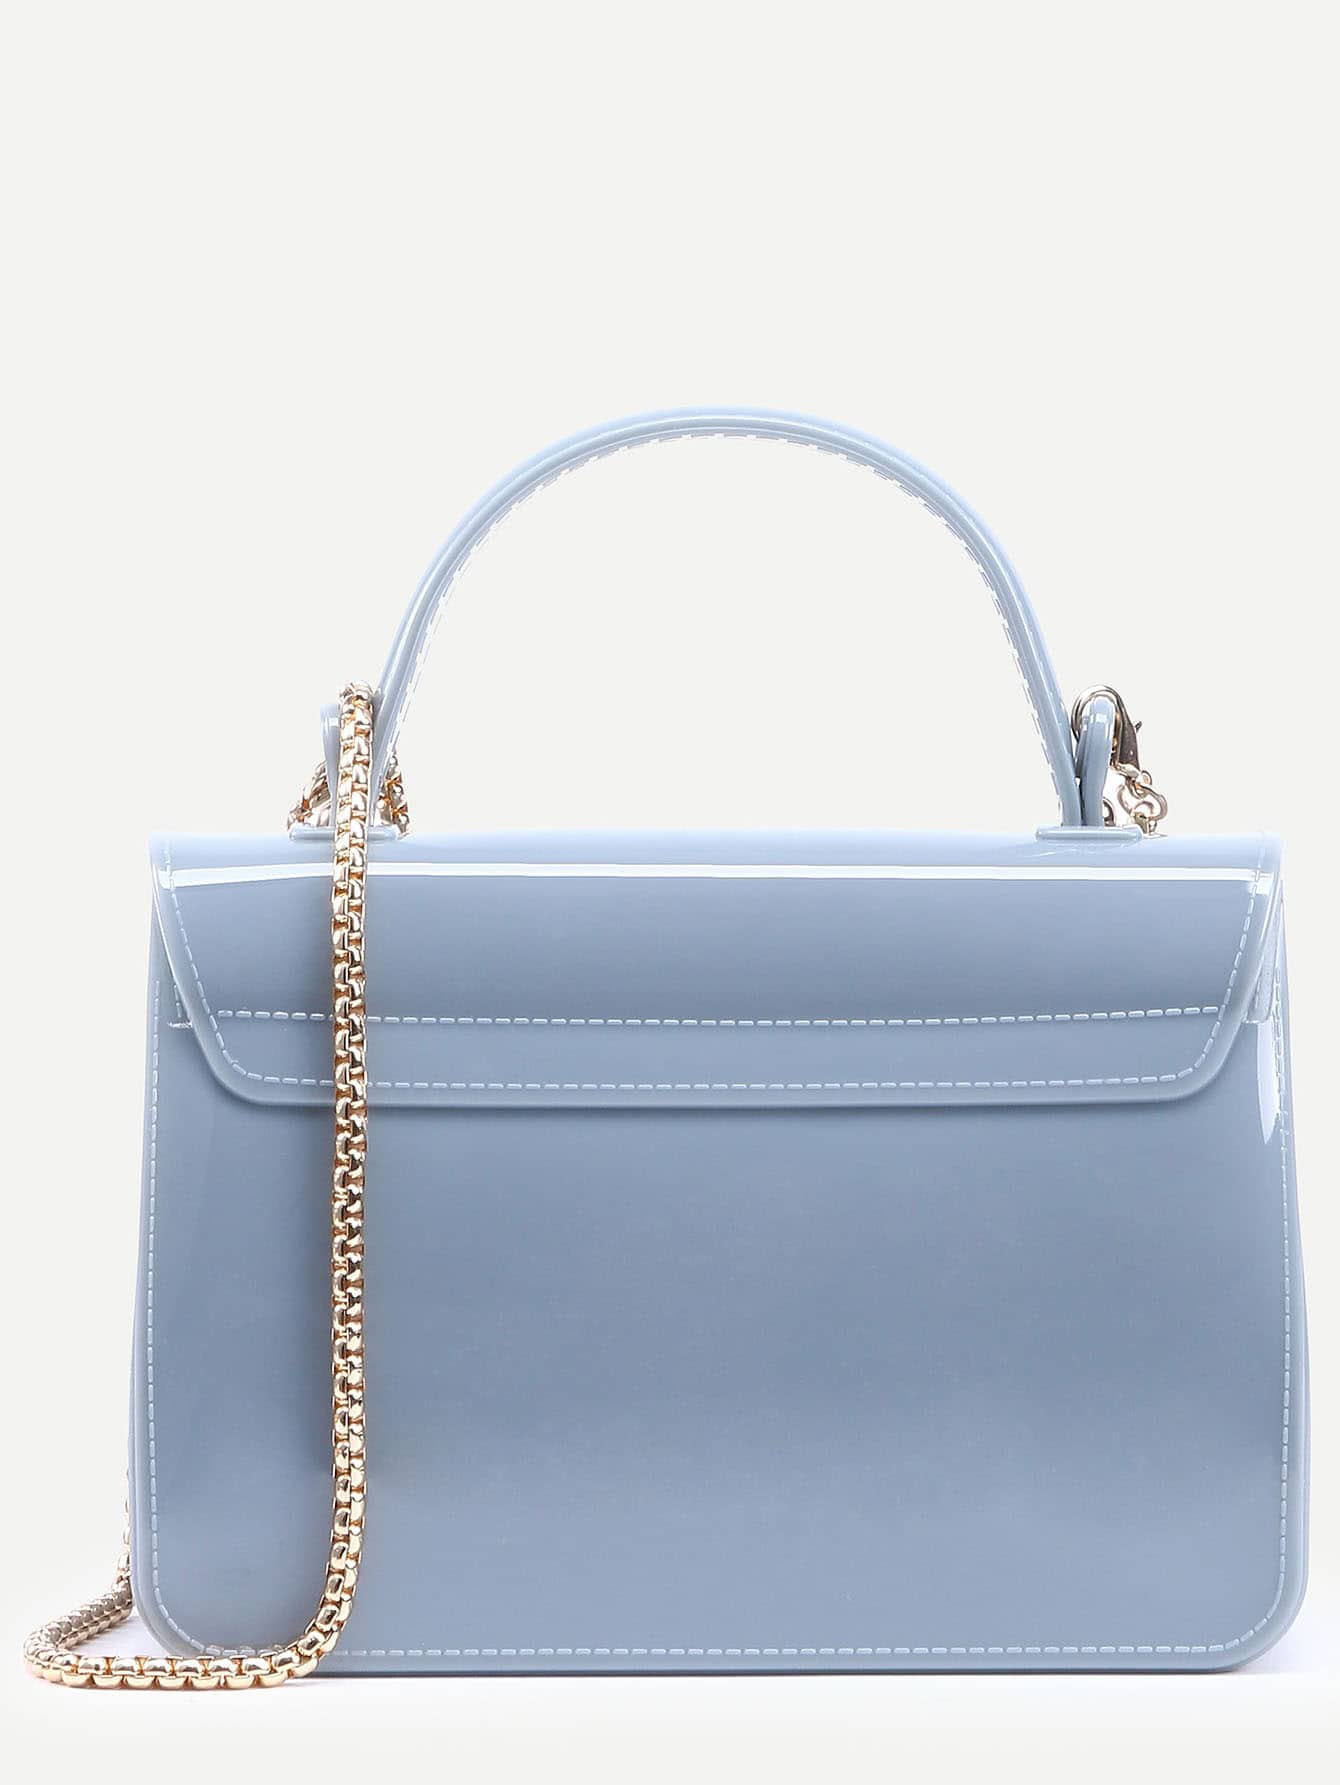 Baby Blue Pushlock Closure Plastic Handbag With Chain